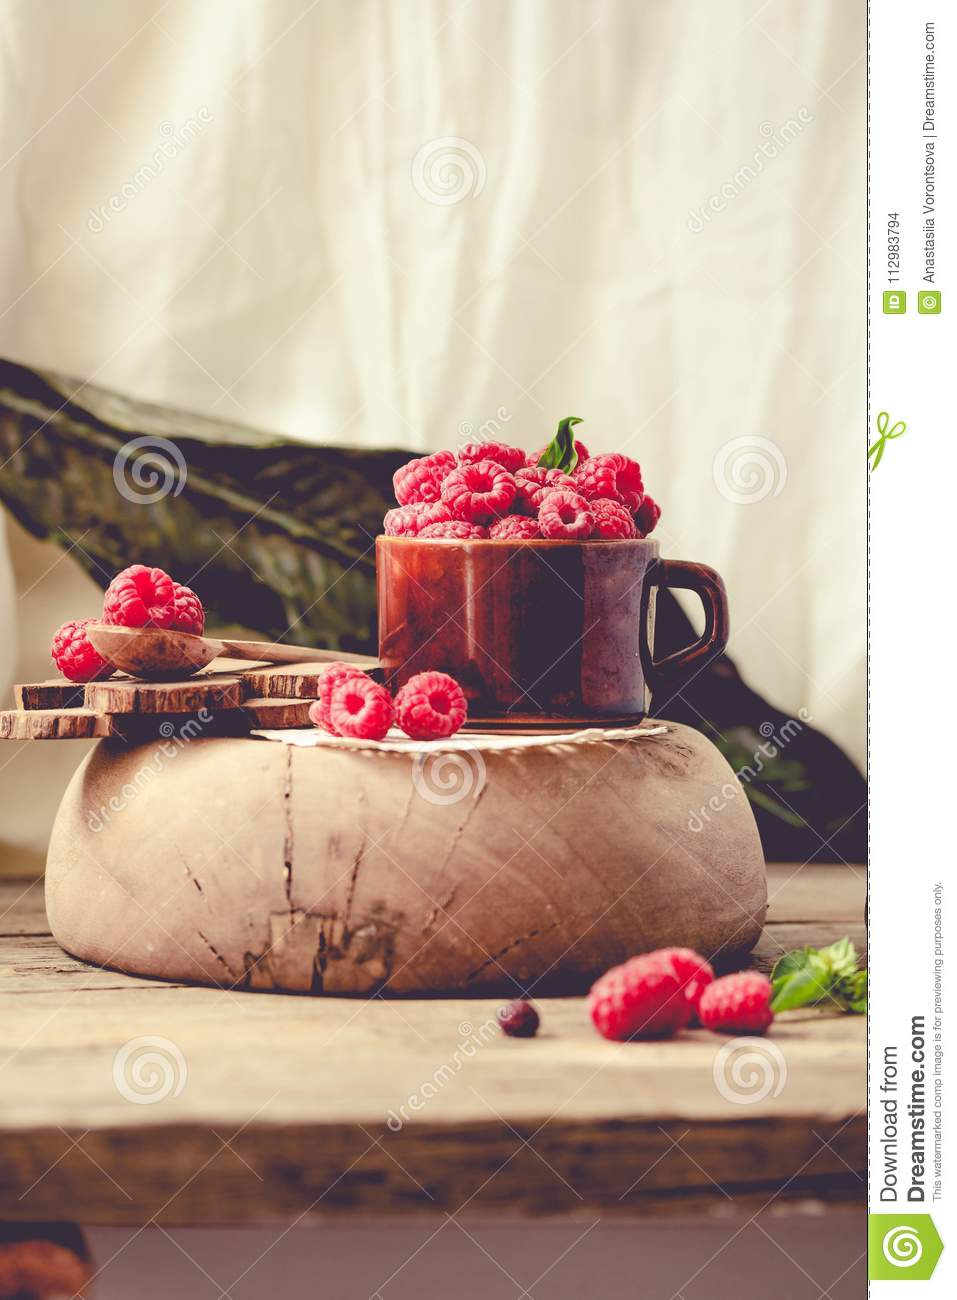 Fresh raspberry with basil in a cup of coffee and a wooden stand